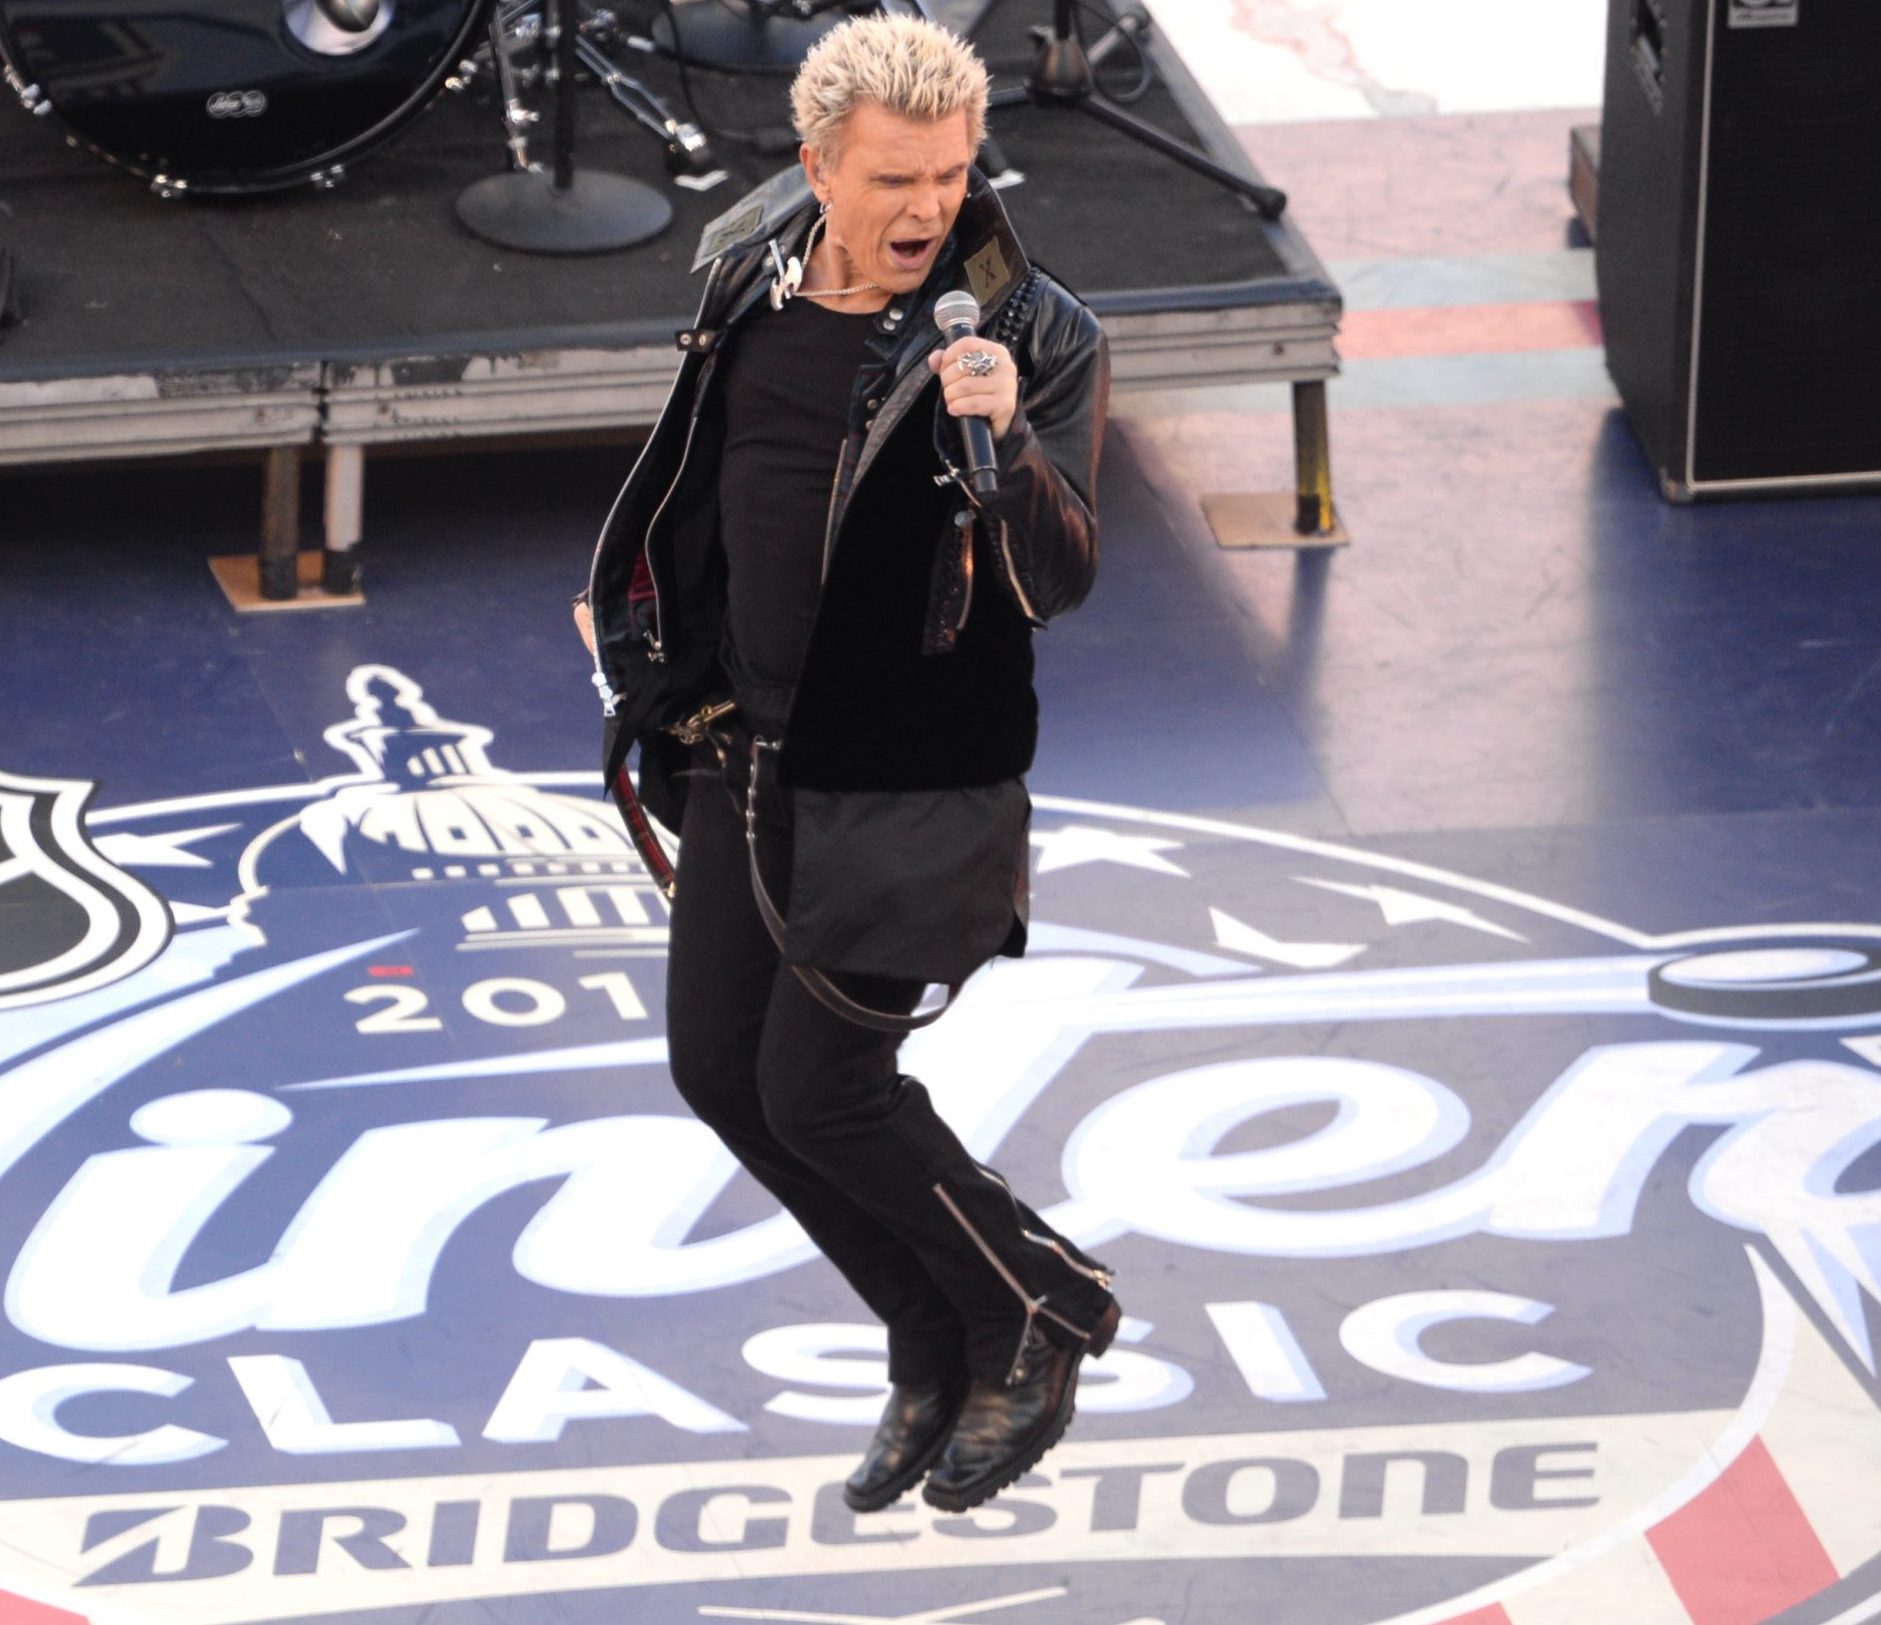 Billy Idol 2015 Winter Classic 16170009902 scaled e1616673541177 20 Things You Probably Didn't Know About Billy Idol